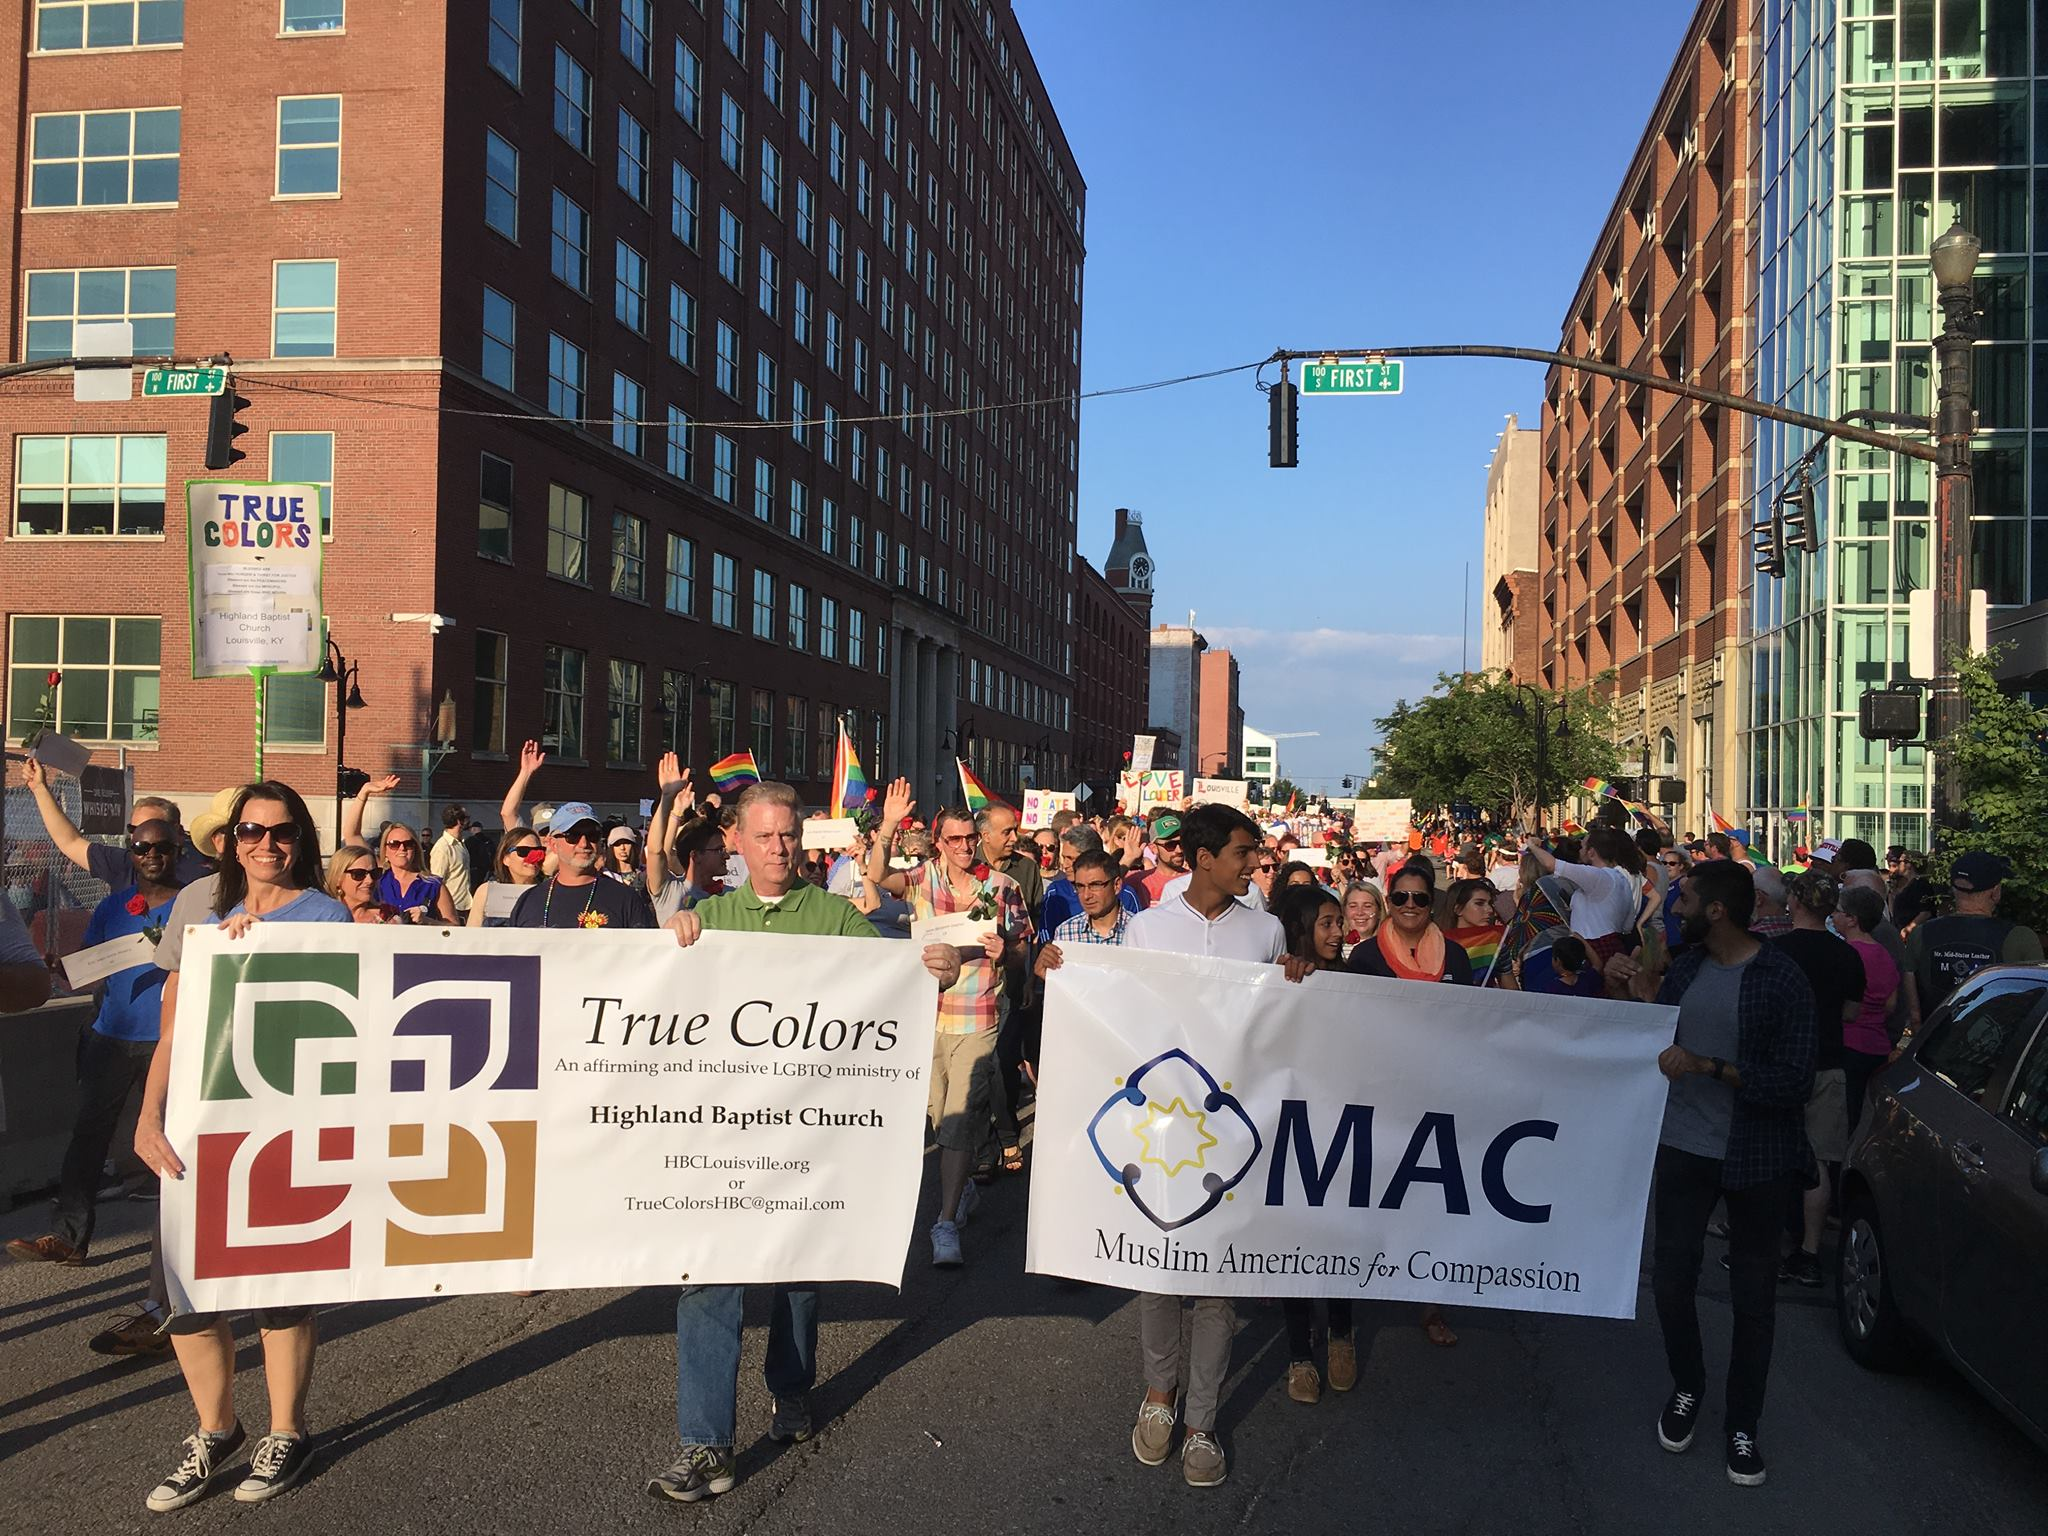 A march including True Colors ministry and Muslims Americans for Compassion